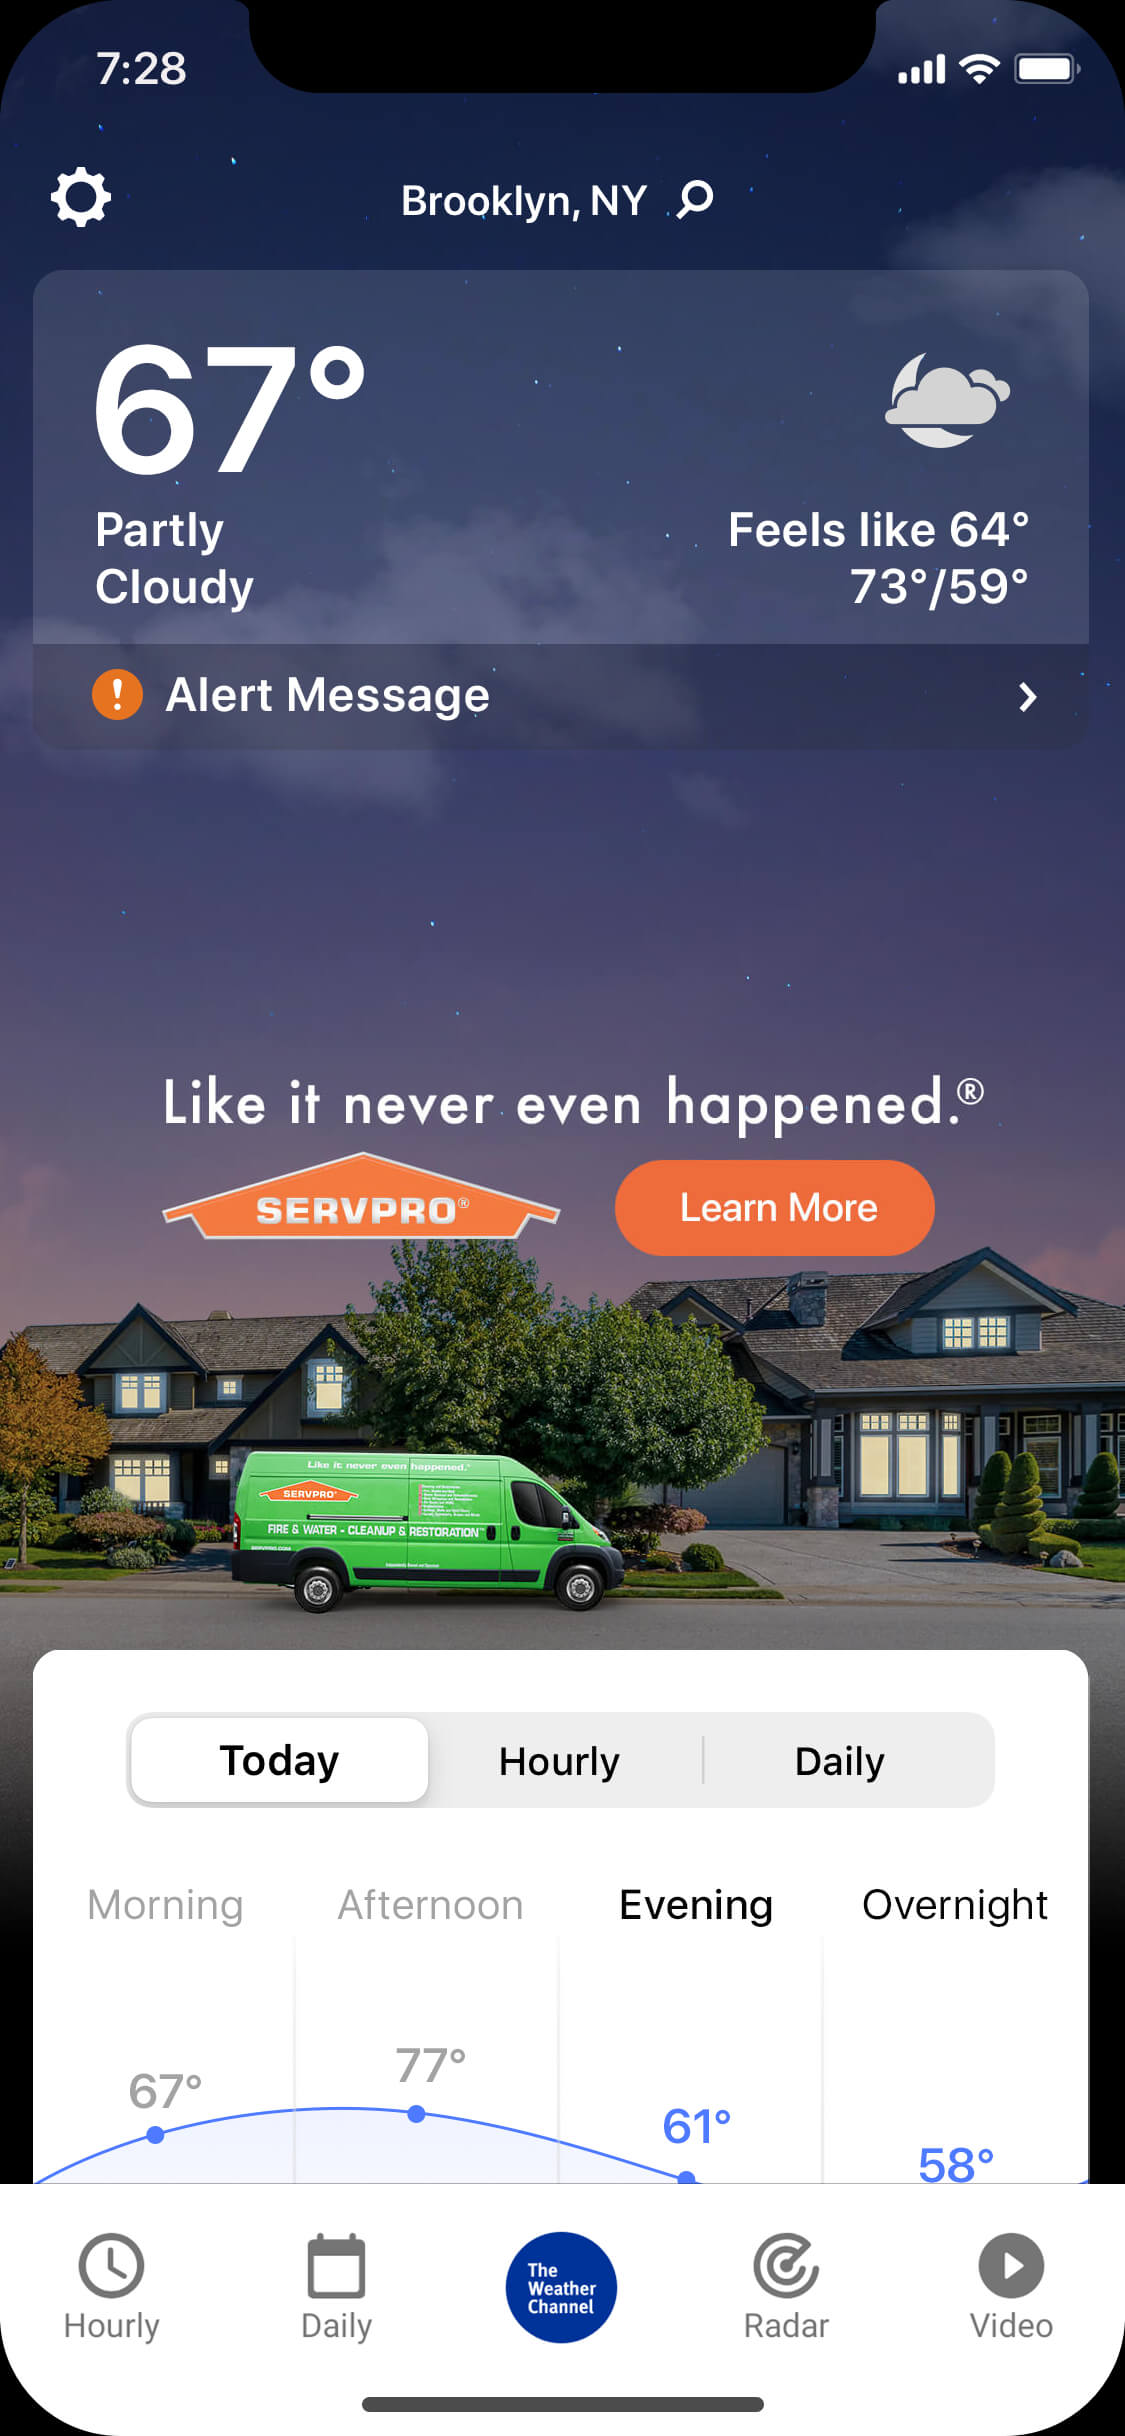 Servpro_MA_IM_Residential_cloudy_night